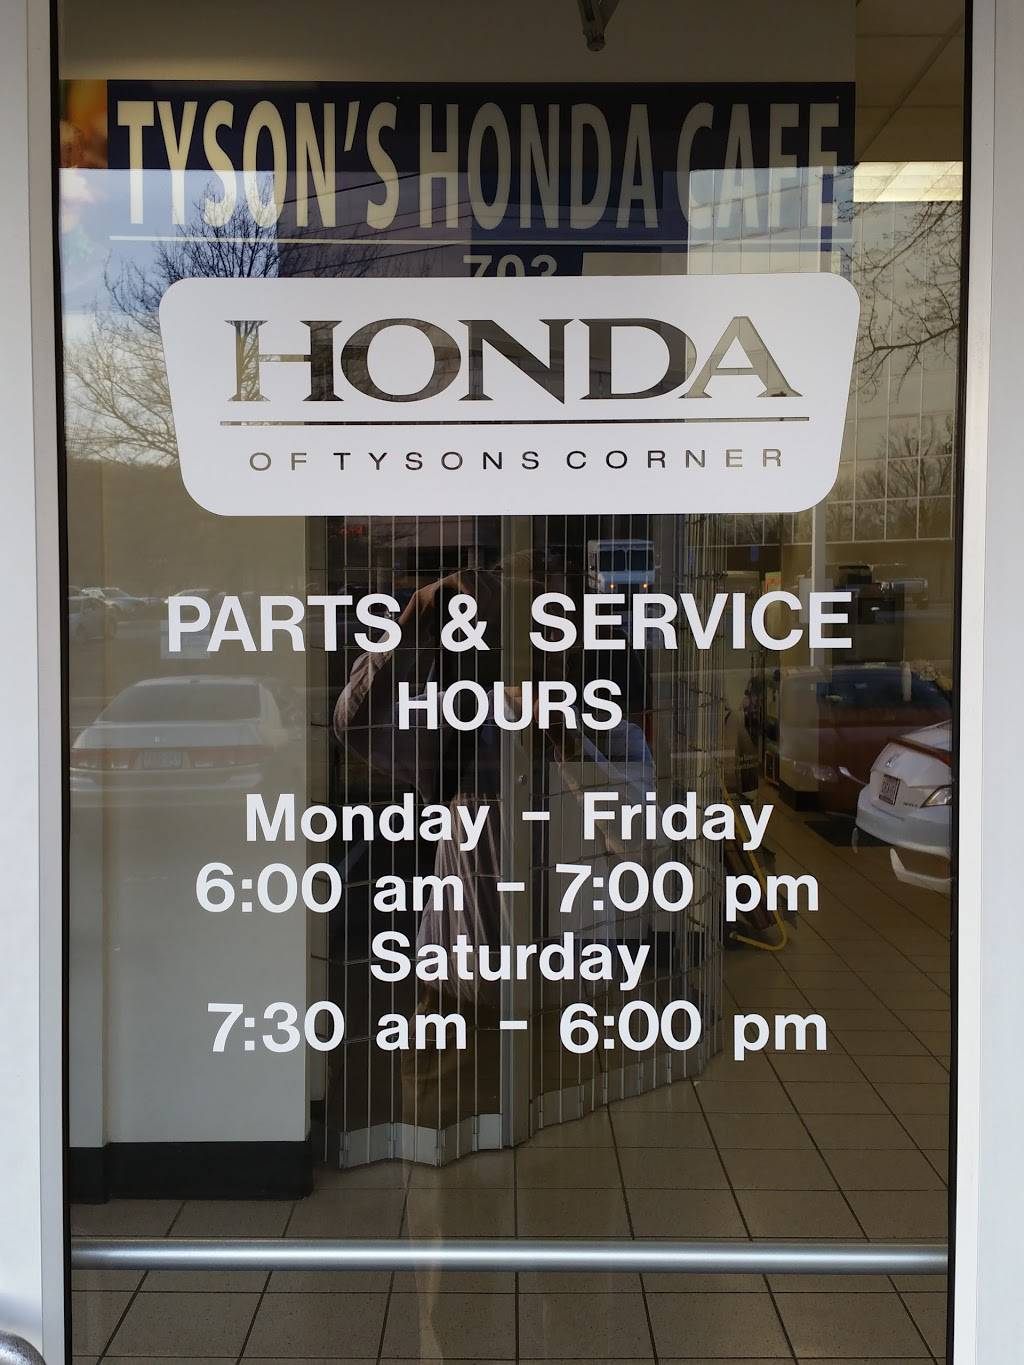 Tysons Honda Cafe | restaurant | 1580 Spring Hill Rd, Vienna, VA 22182, USA | 7038932574 OR +1 703-893-2574